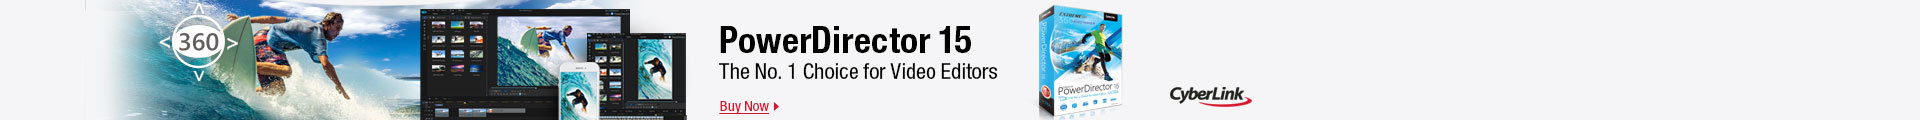 Power director 15: the No.1 choice for video editors